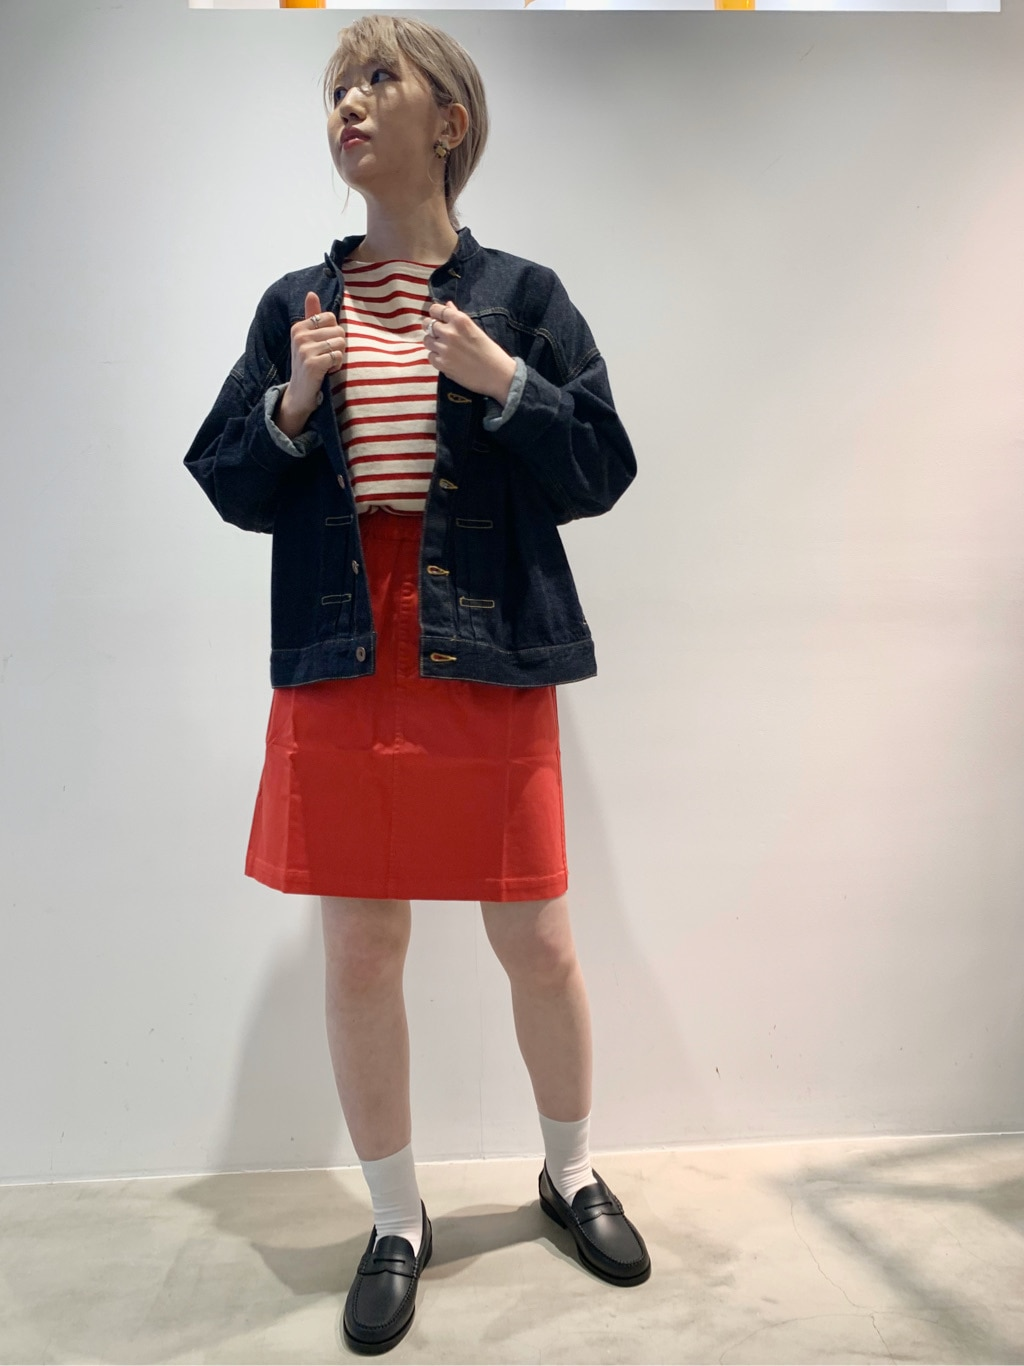 Dot and Stripes CHILD WOMAN ラフォーレ原宿 身長:160cm 2020.09.02